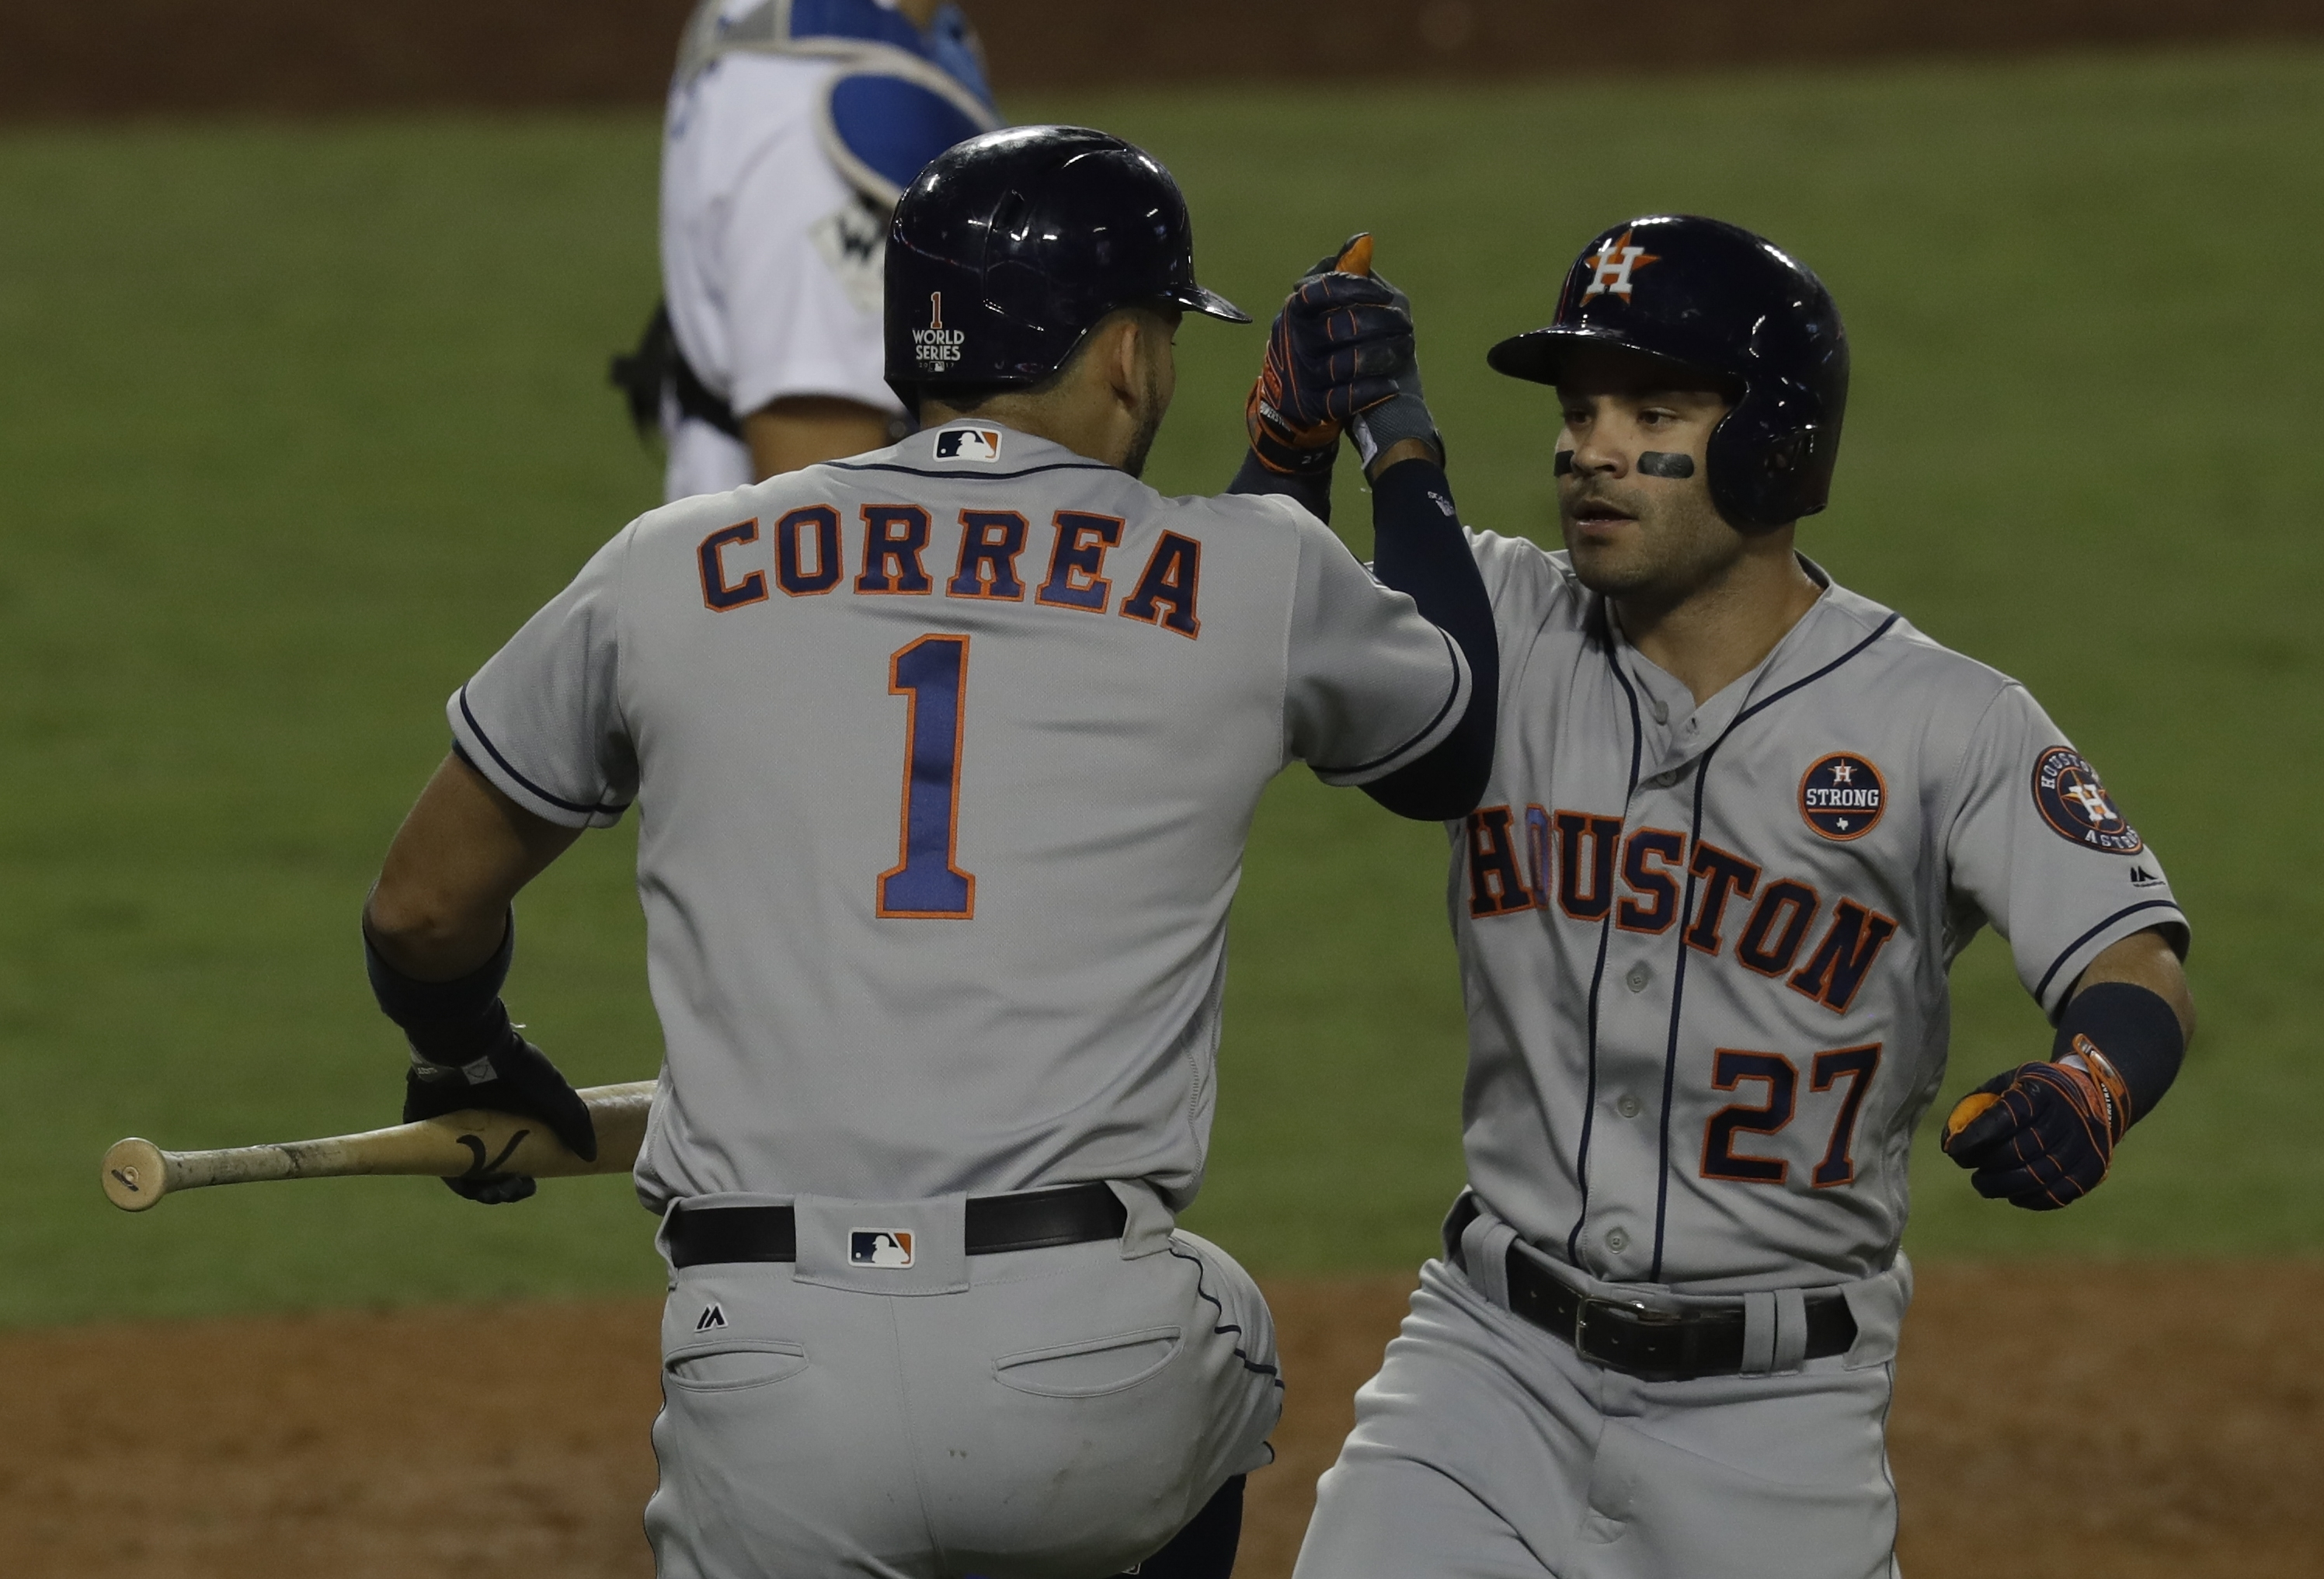 Houston Astros' Jose Altuve is congratulated by Carlos Correa after hitting a home run during the 10th inning of Game 2 of baseball's World Series against the Los Angeles Dodgers Wednesday, Oct. 25, 2017, in Los Angeles. (AP Photo/Alex Gallardo)